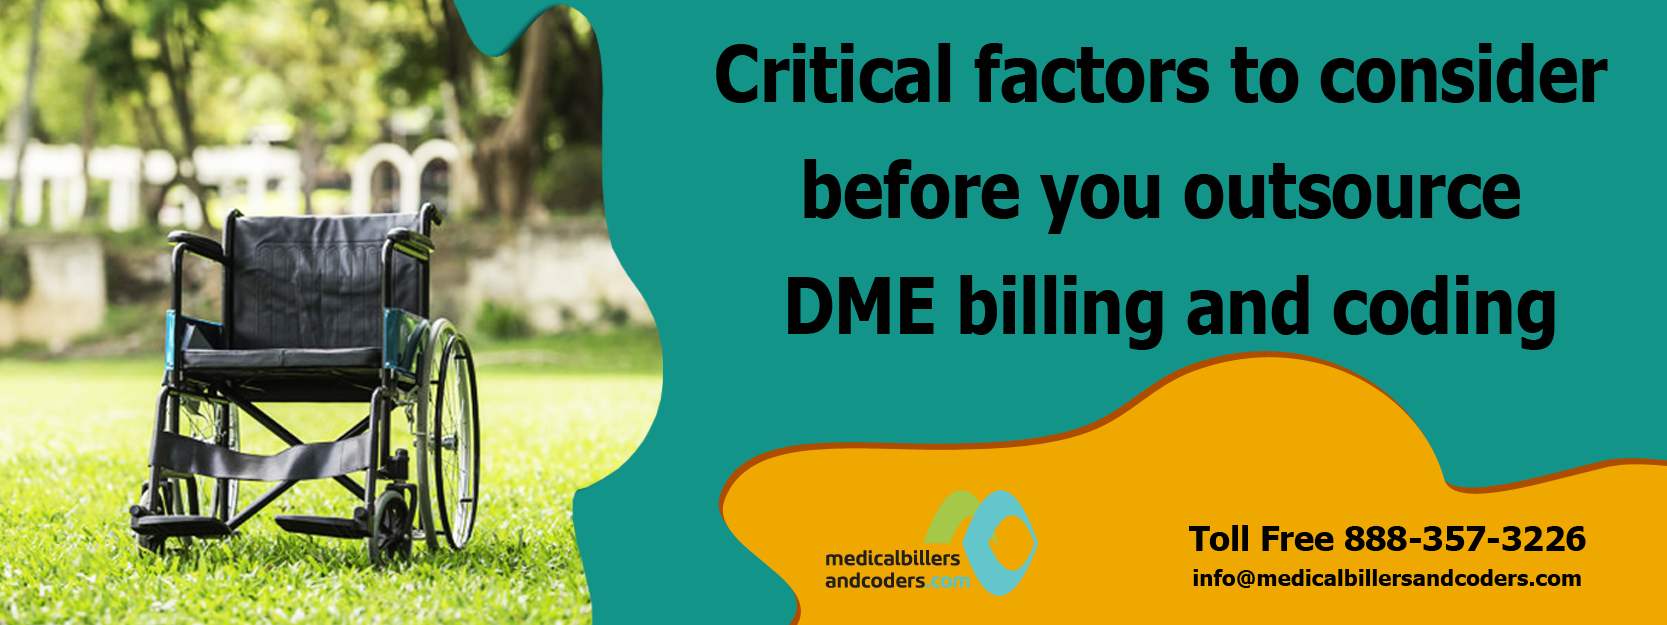 Critical factors to consider before you outsource DME billing and coding